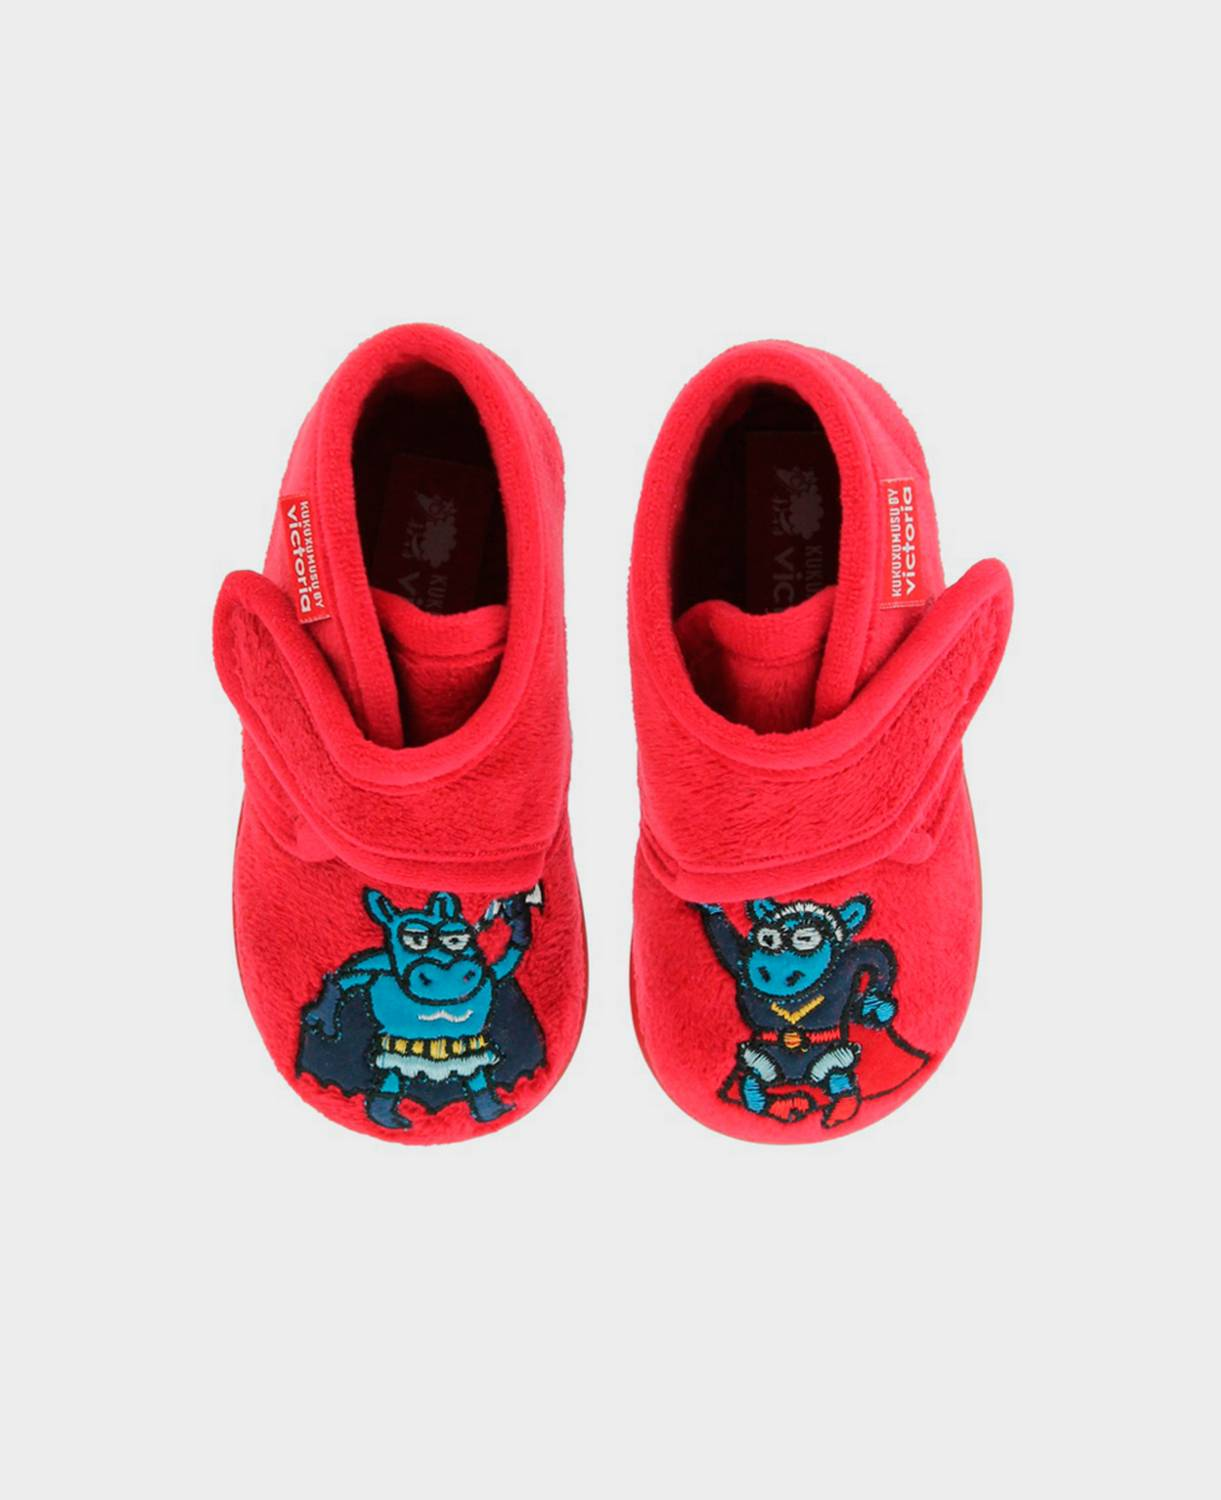 Zapatillas de casa infantiles Supersheep Wonderbat